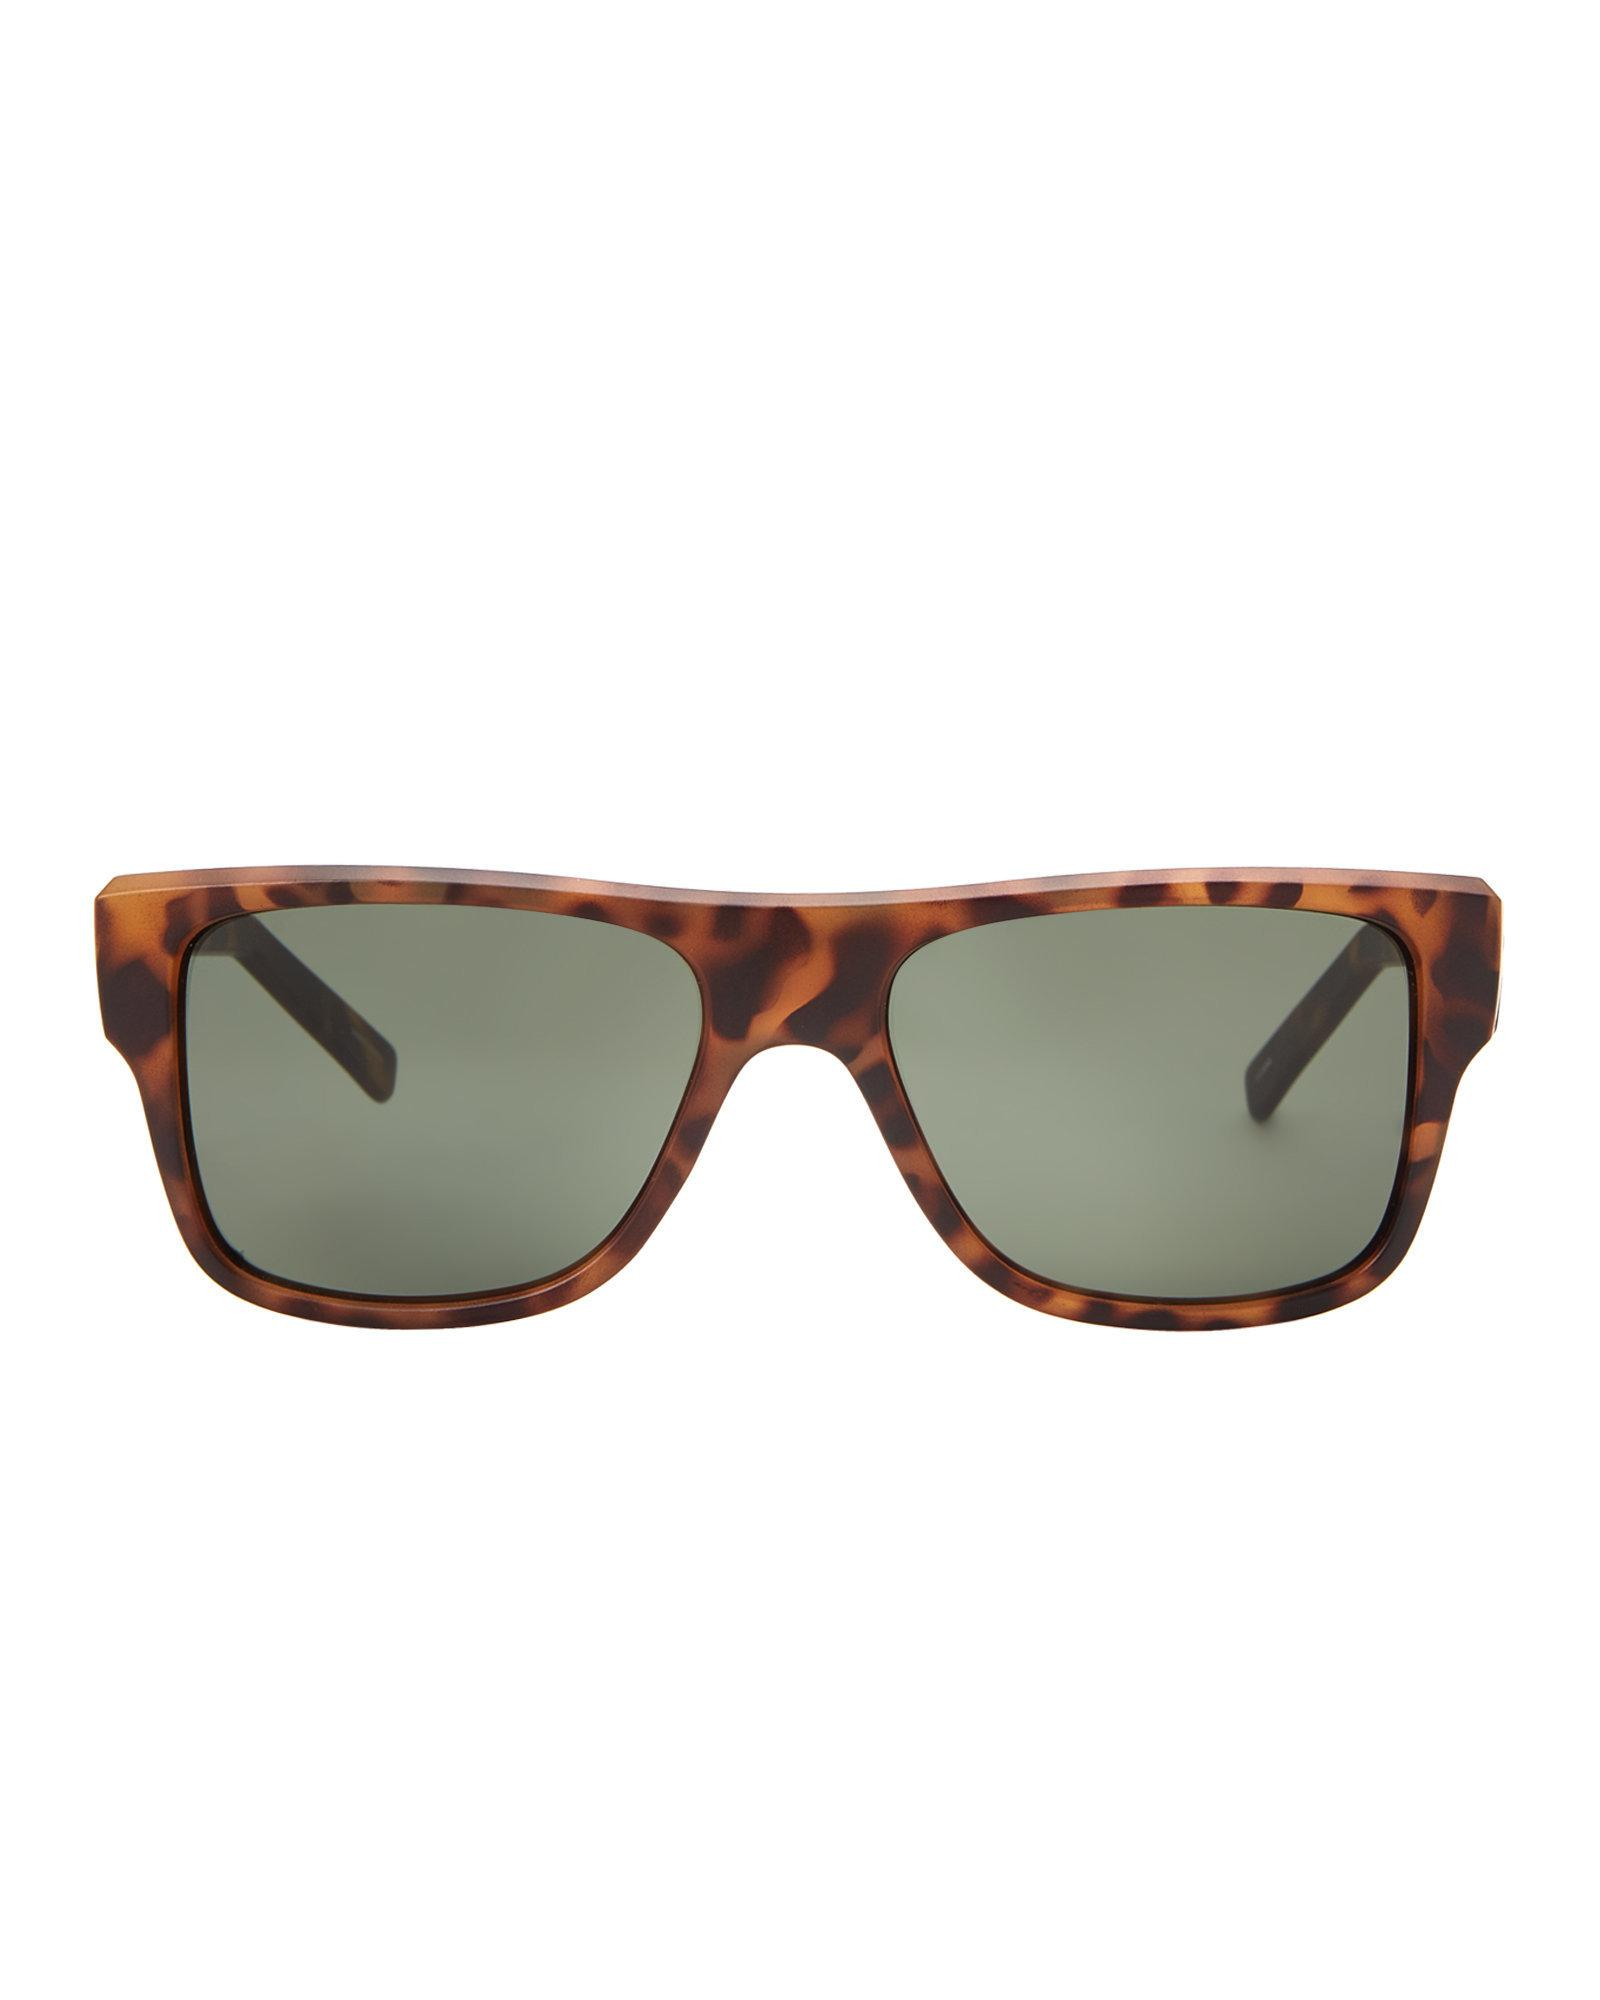 c96f6cffe5ab Lyst - Under Armour Tortoiseshell-look Regime Square Sunglasses in Brown